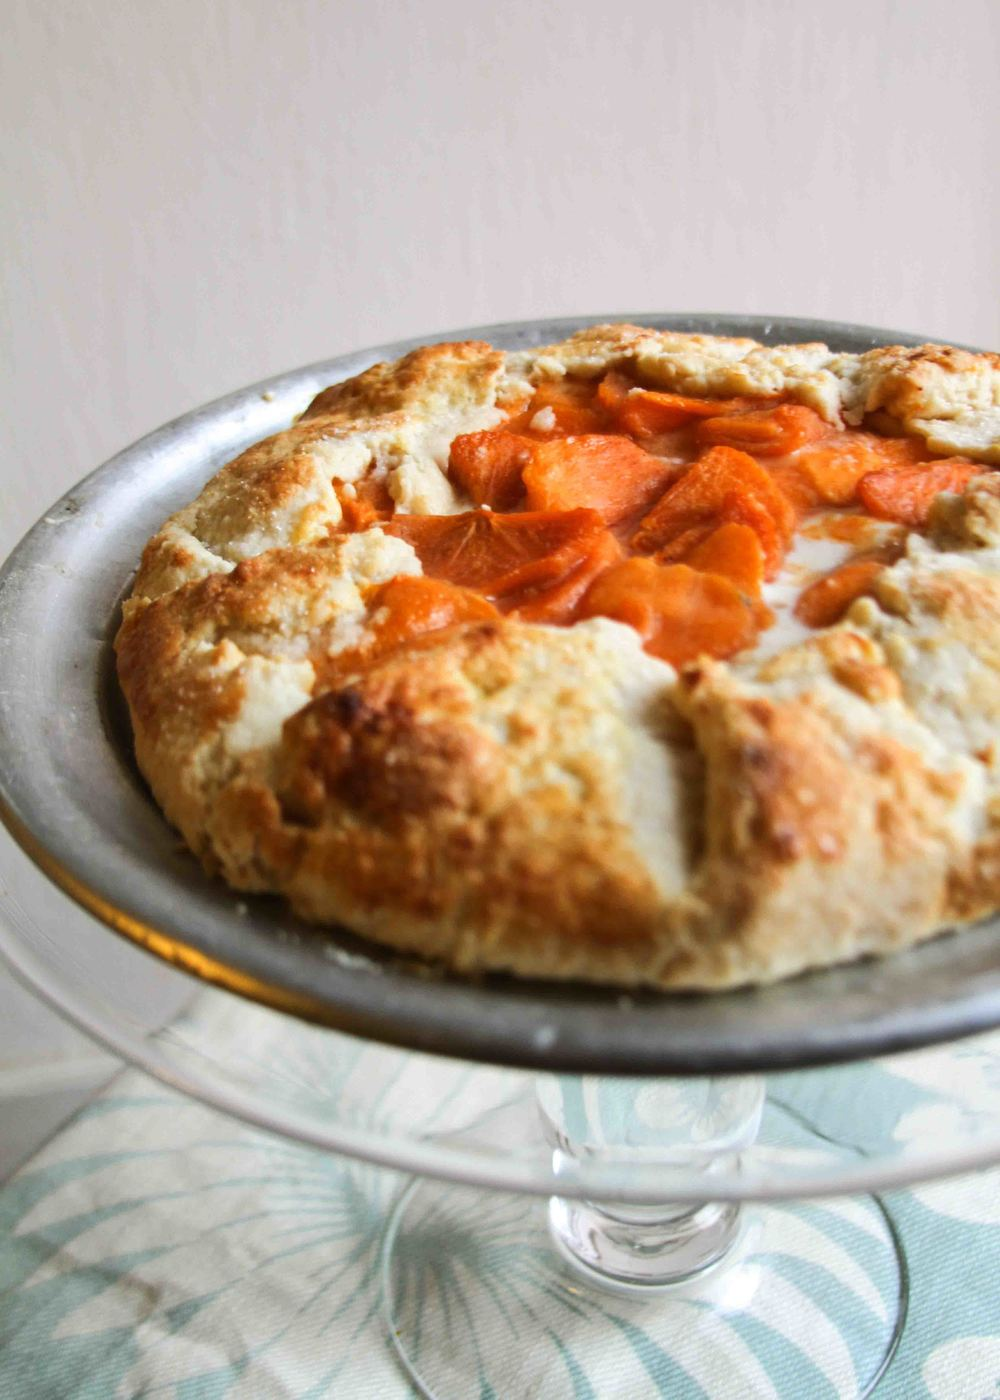 Persimmon and Ricotta Galette